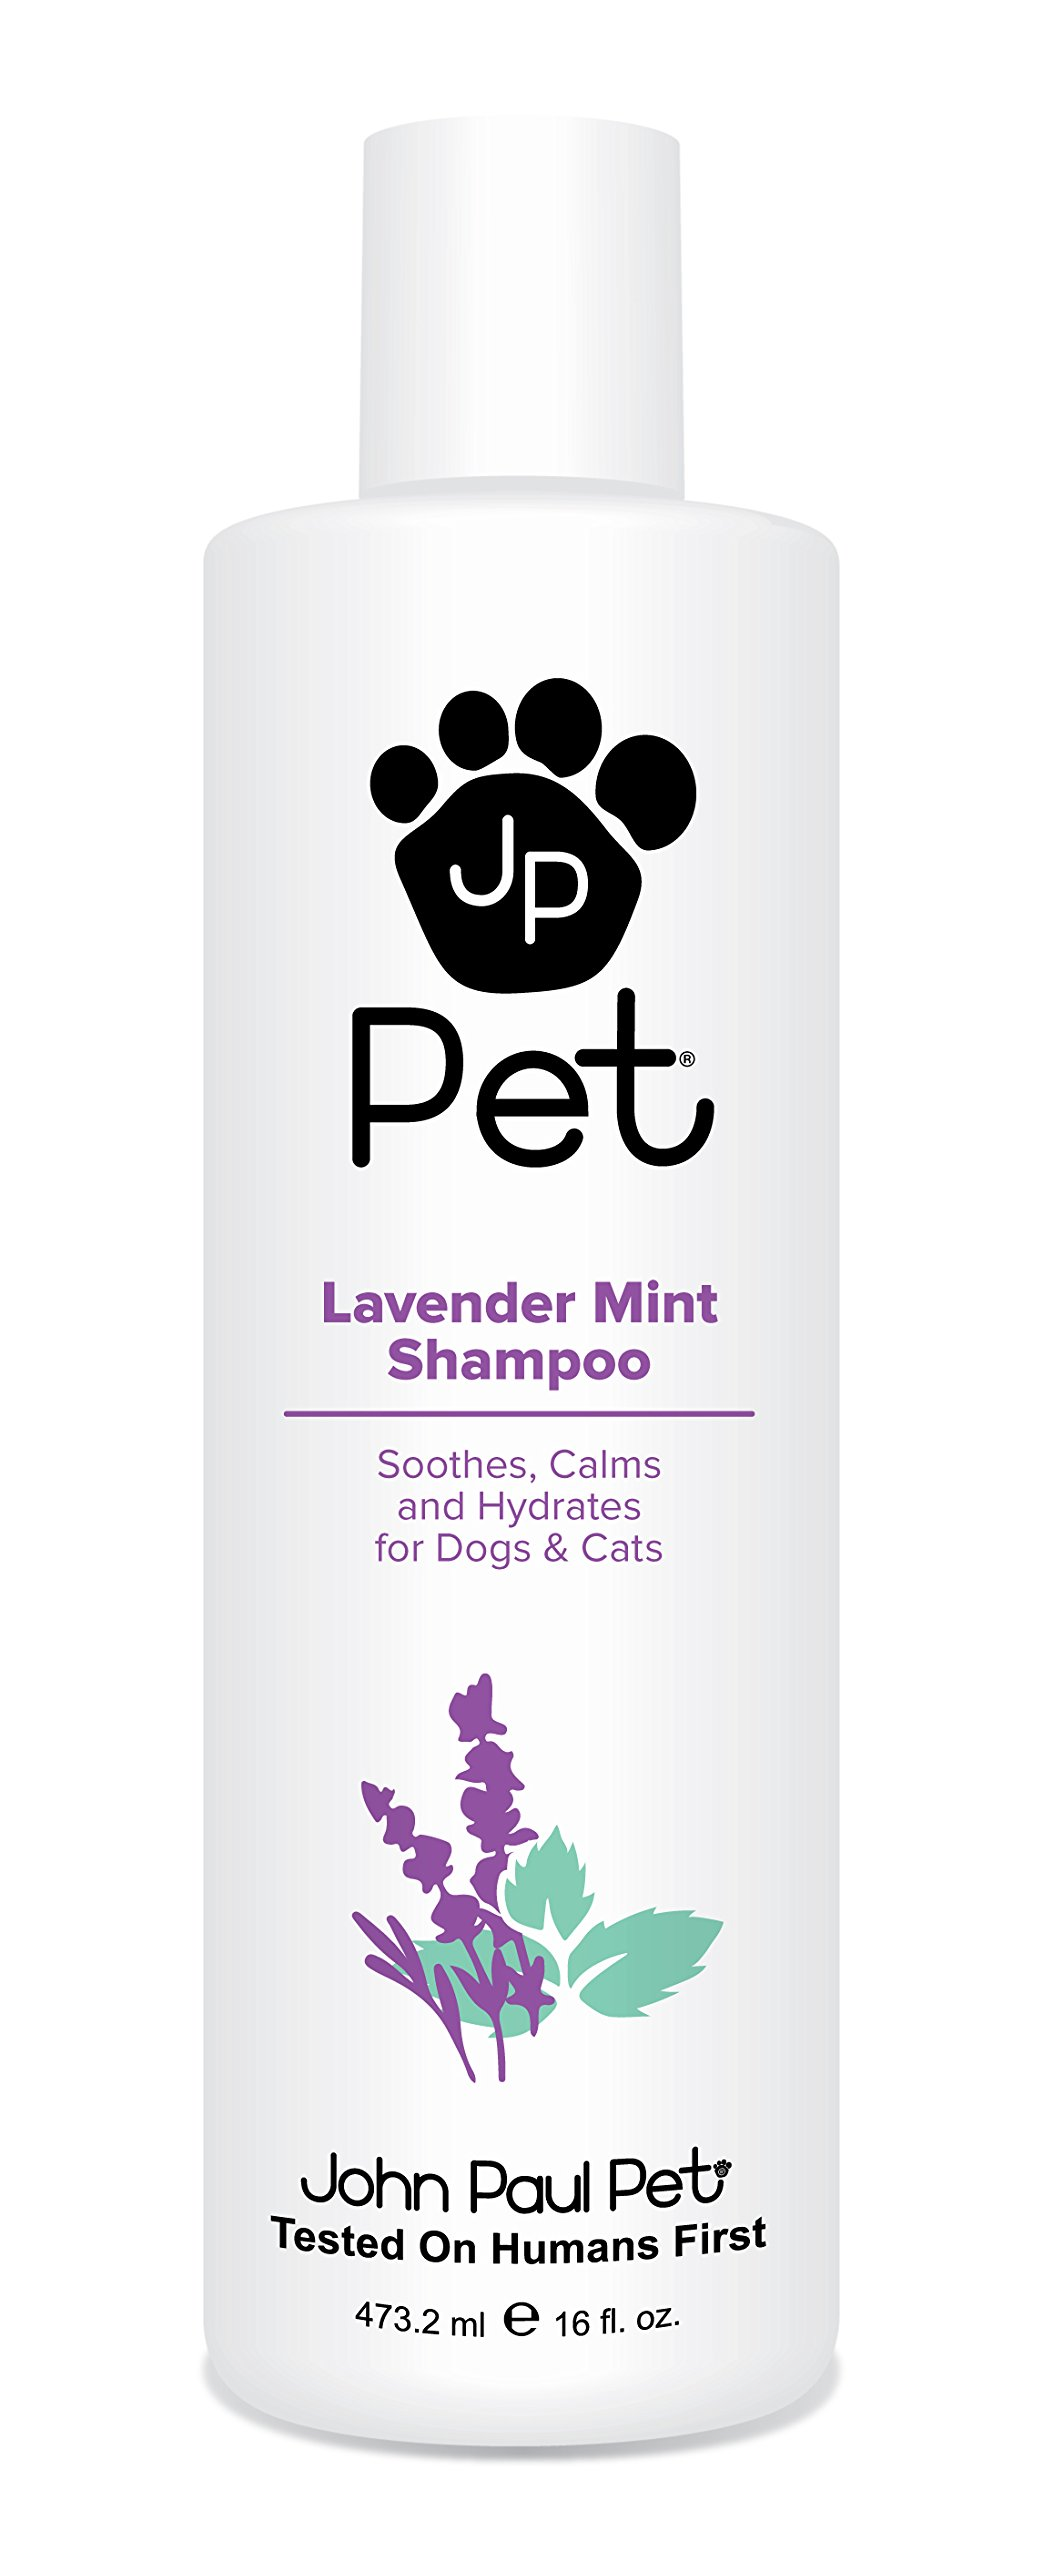 John Paul Pet Lavender Mint Shampoo for Dogs and Cats, Soothes Calms and Hydrates, 16-Ounce